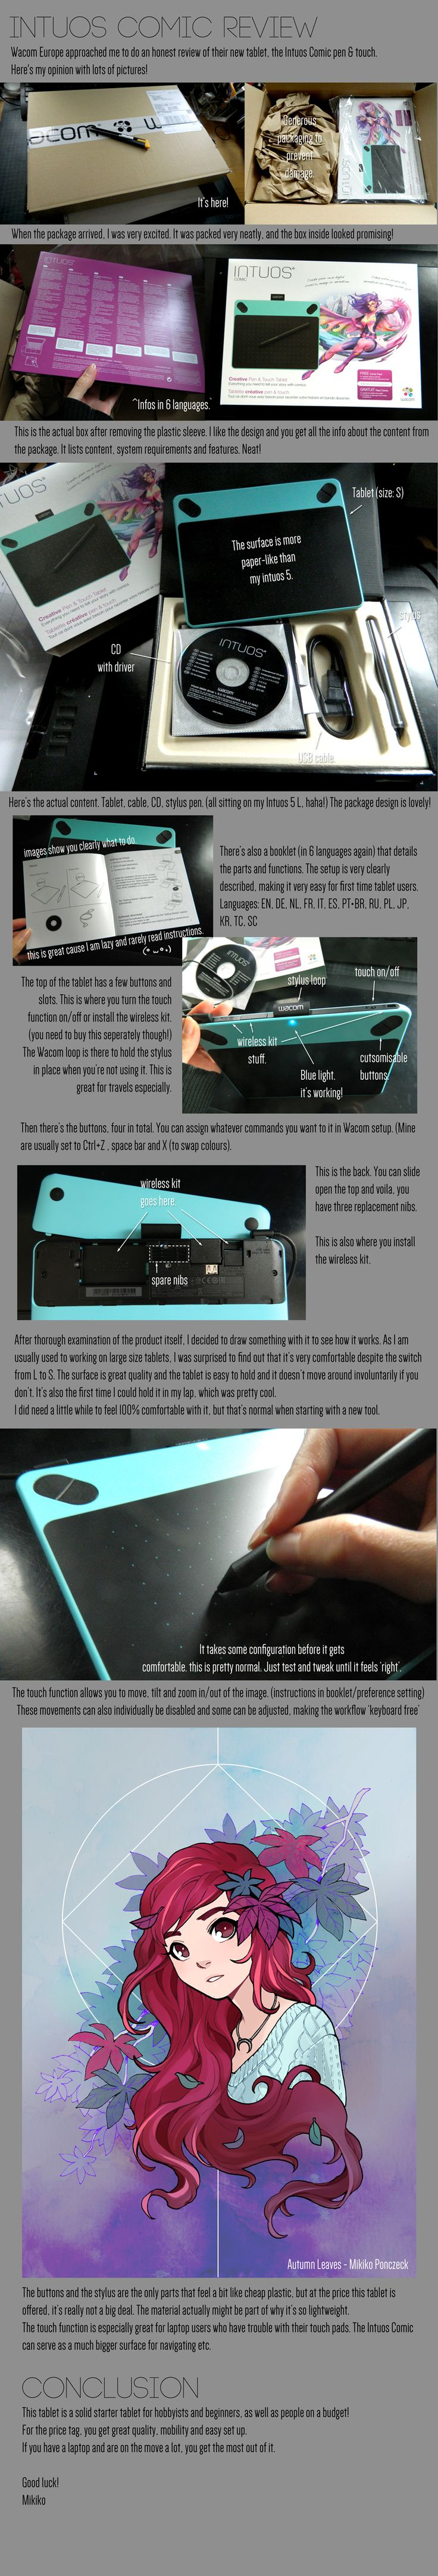 Wacom Intuos Comic Review by Zombiesmile on DeviantArt